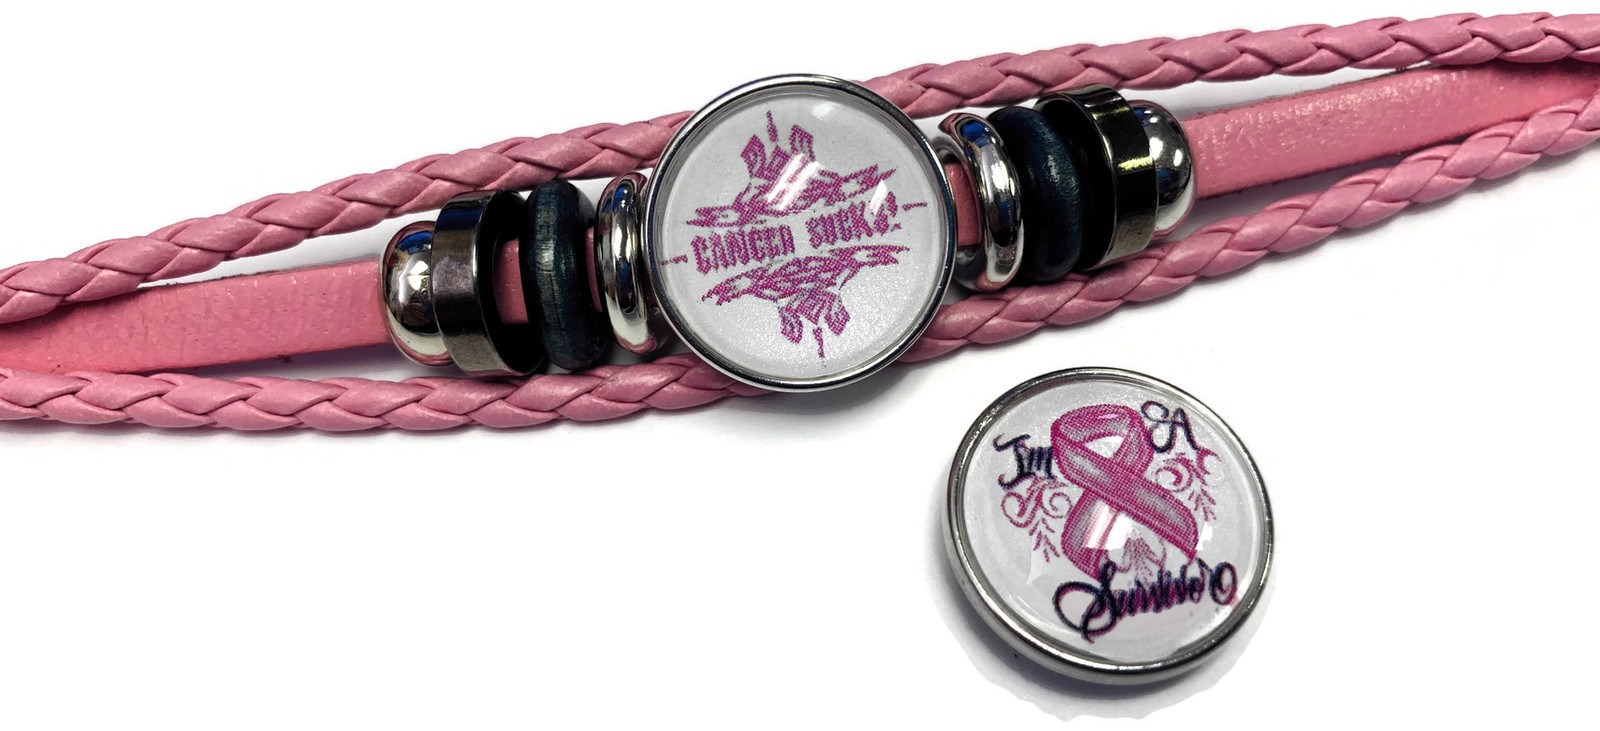 Breast Cancer Sucks Snaps On Pink Leather Bracelet W/2 Snap Jewelry Charms